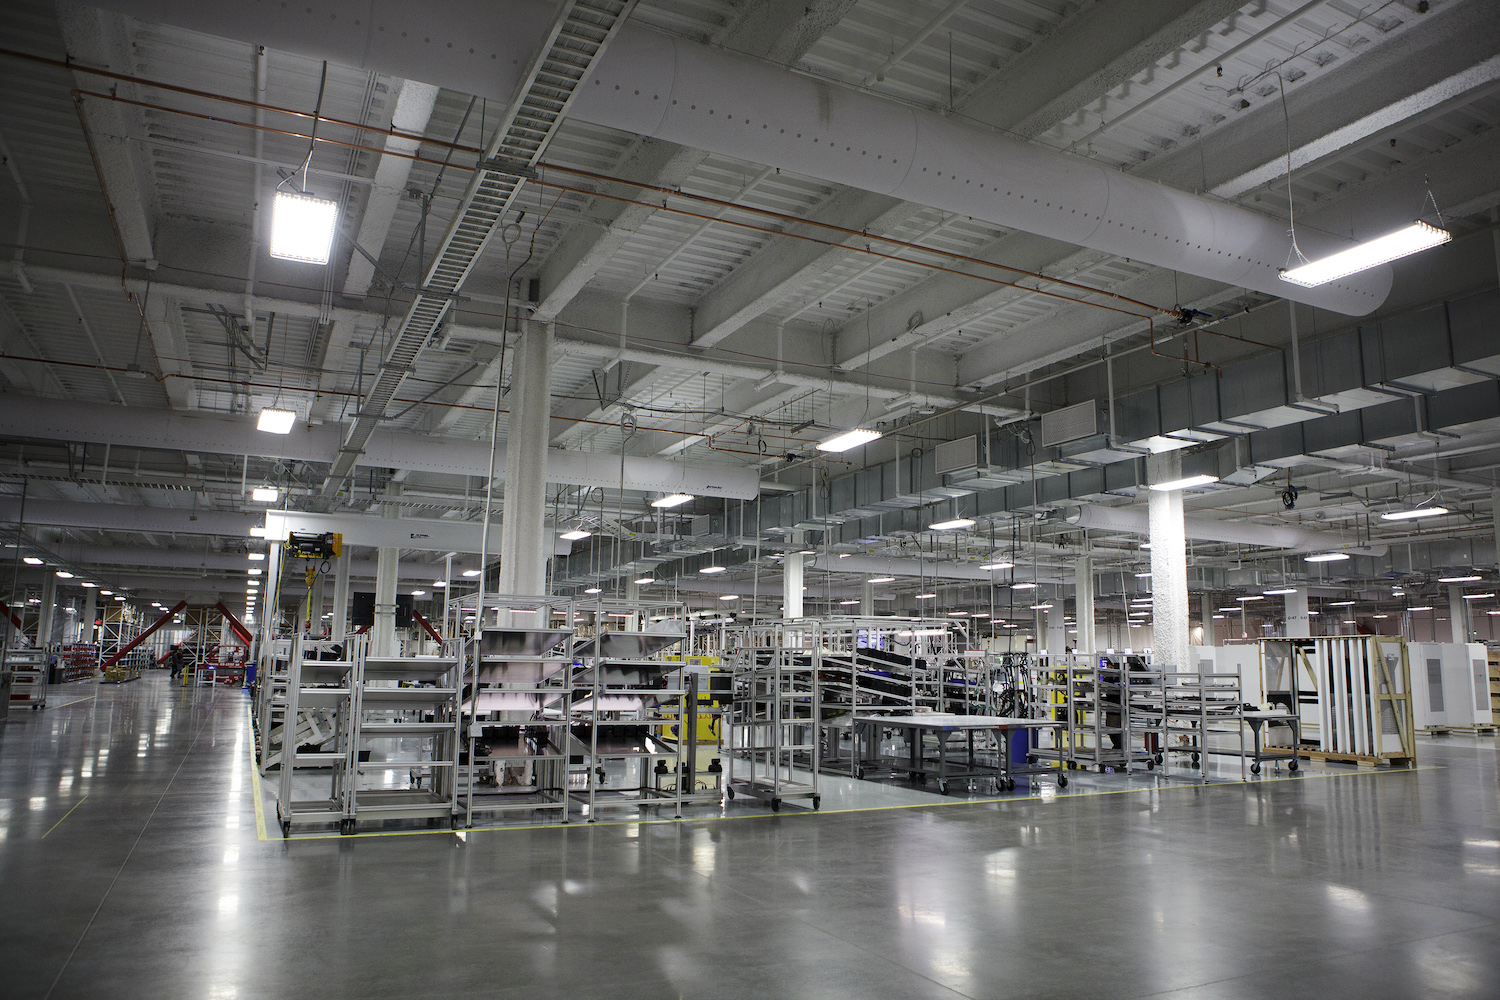 Machinery stands inside the Tesla Motors Inc. Gigafactory in Sparks, Nevada, U.S., on Tuesday, July 26, 2016. Tesla officially opened its Gigafactory on Tuesday, a little more than two years after construction began. The factory is about 14 percent complete but when it's finished, it will be about 10 million square feet, or about the size of 262 NFL football fields. Photographer: Troy Harvey/Bloomberg